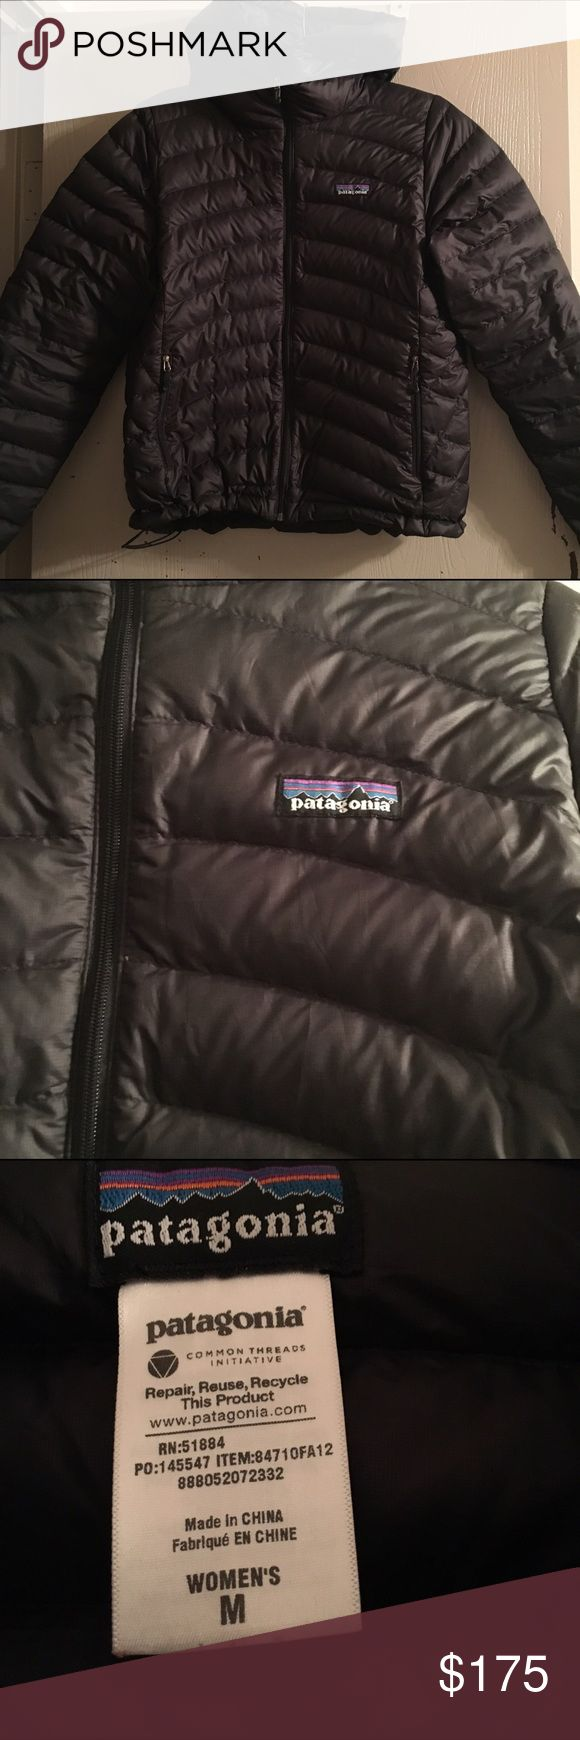 Patagonia Down Hoody Medium Gently used Patagonia Down Sweater Hoody, size medium, slight normal wear, price greatly reflects any wear! Perfect for EVERYTHING!! Make me an offer Patagonia Jackets & Coats